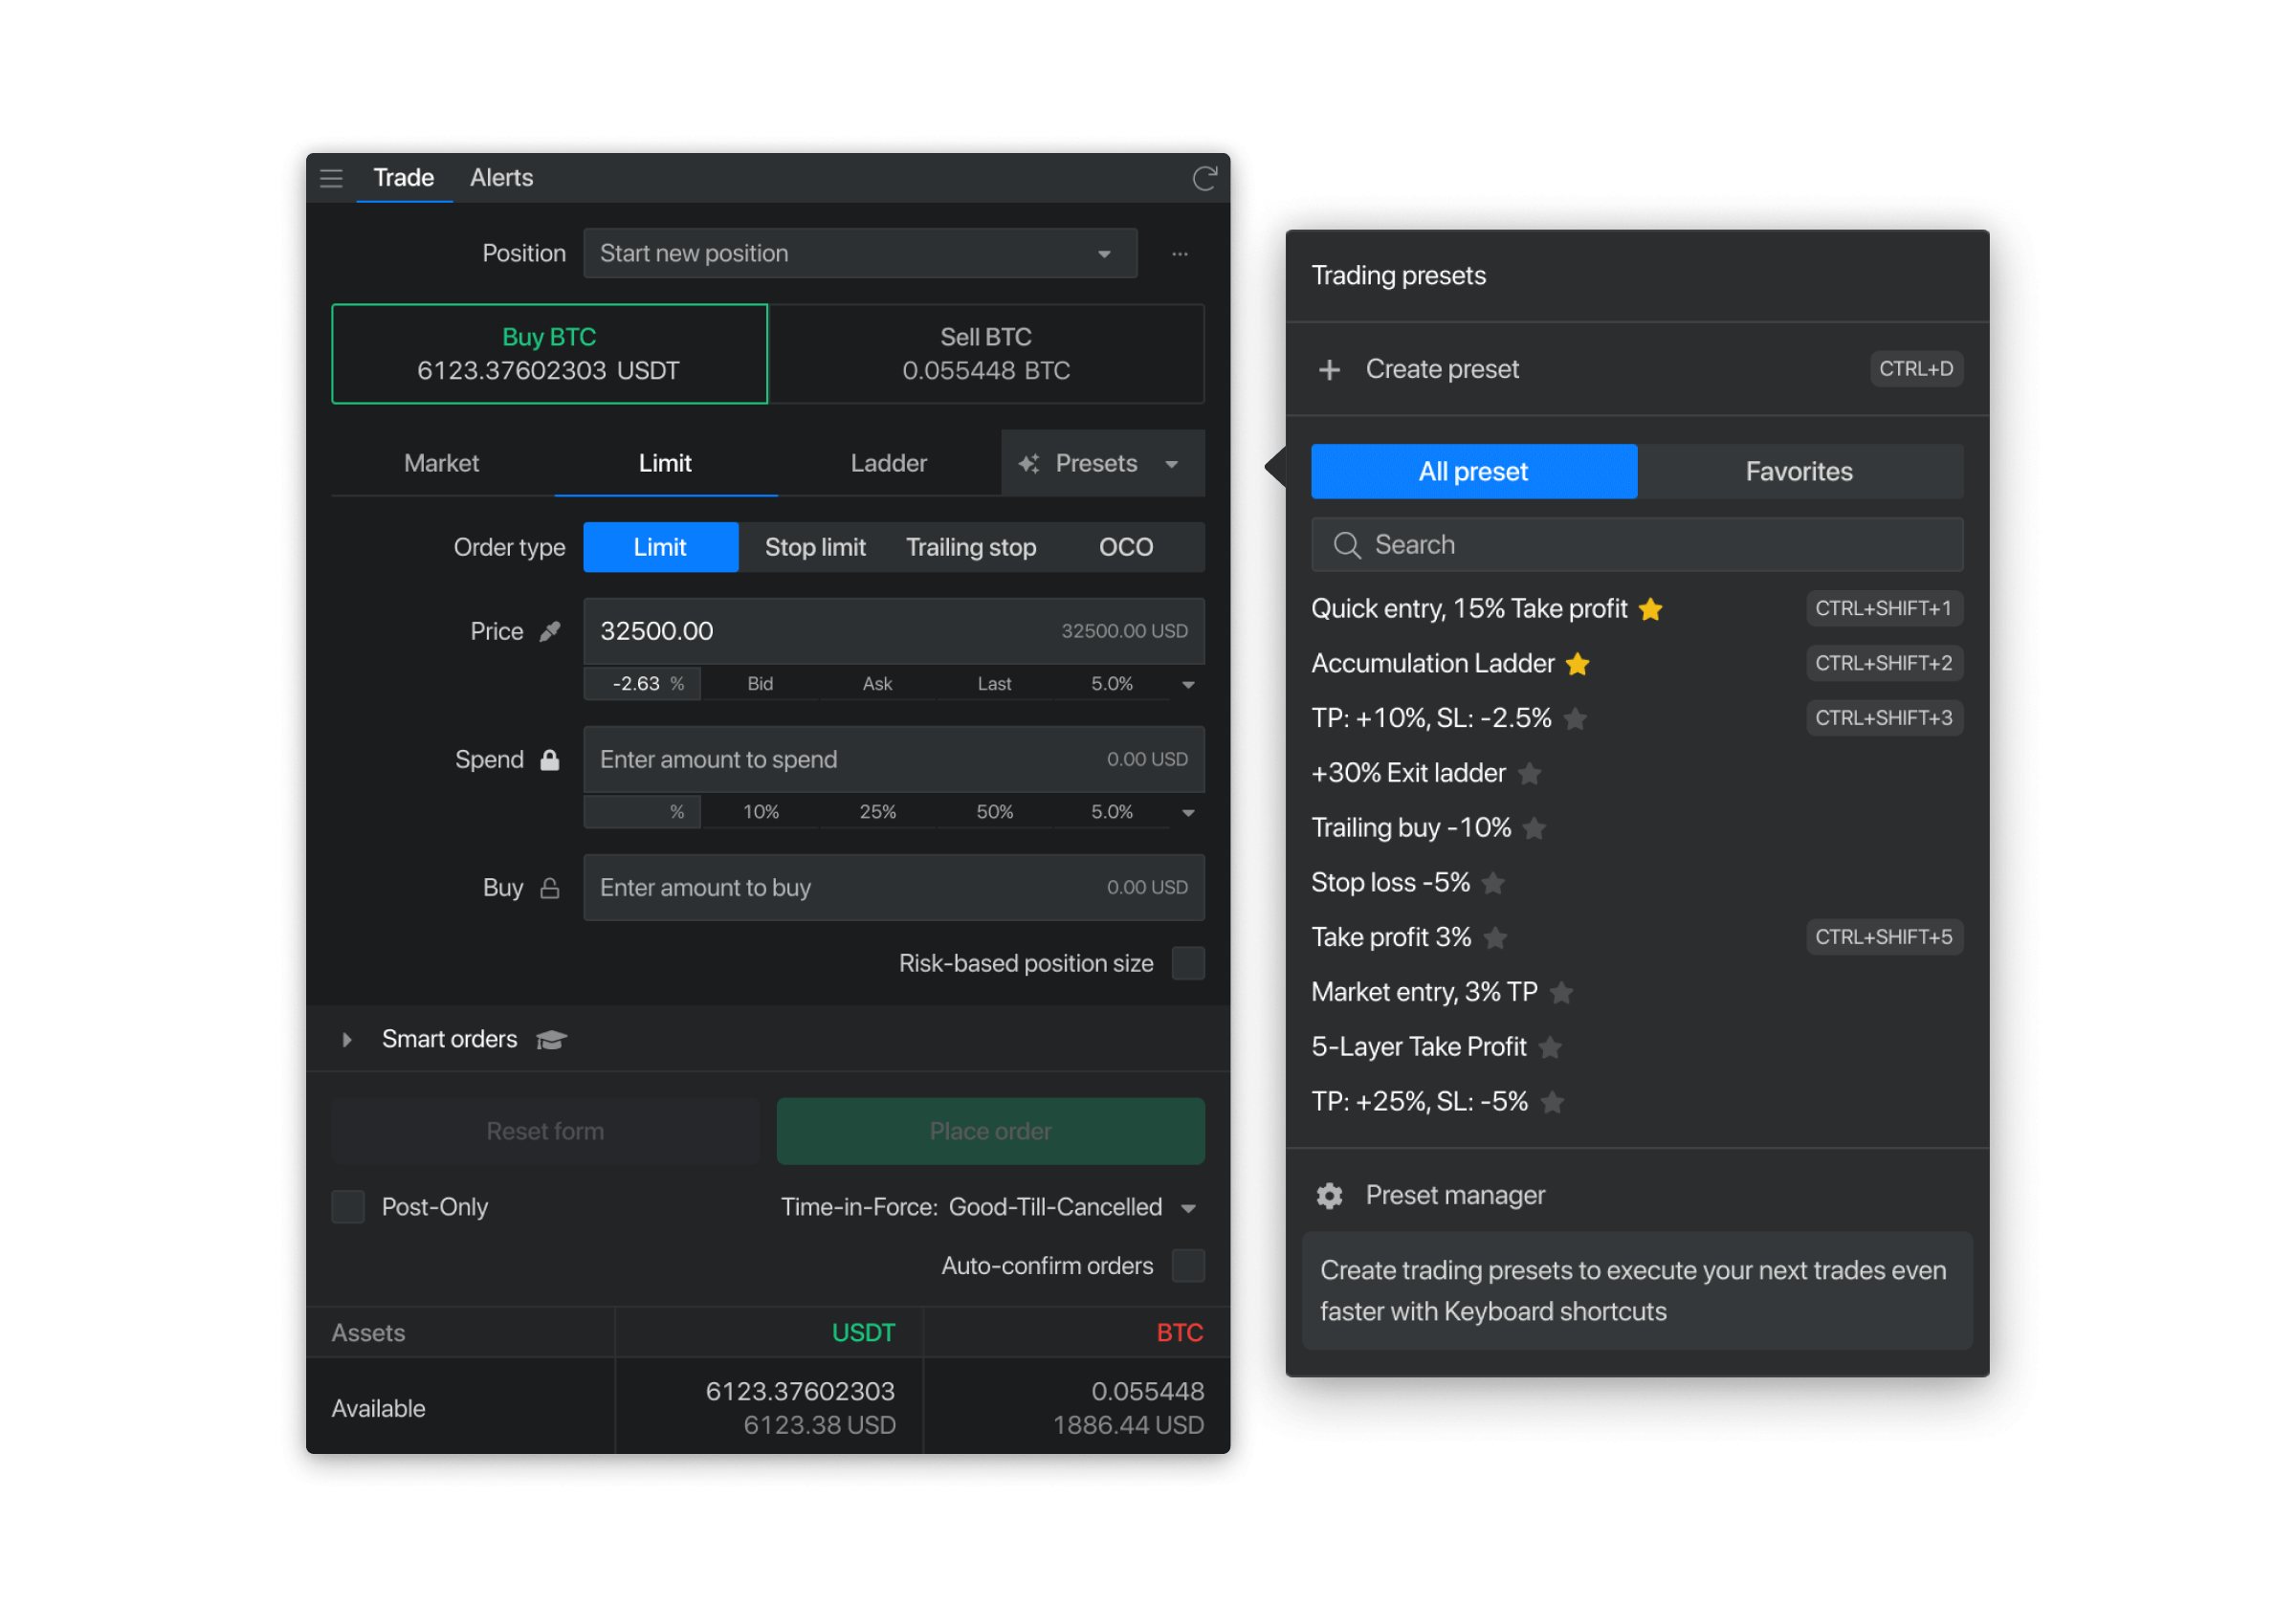 Smart trading presets (coming soon)